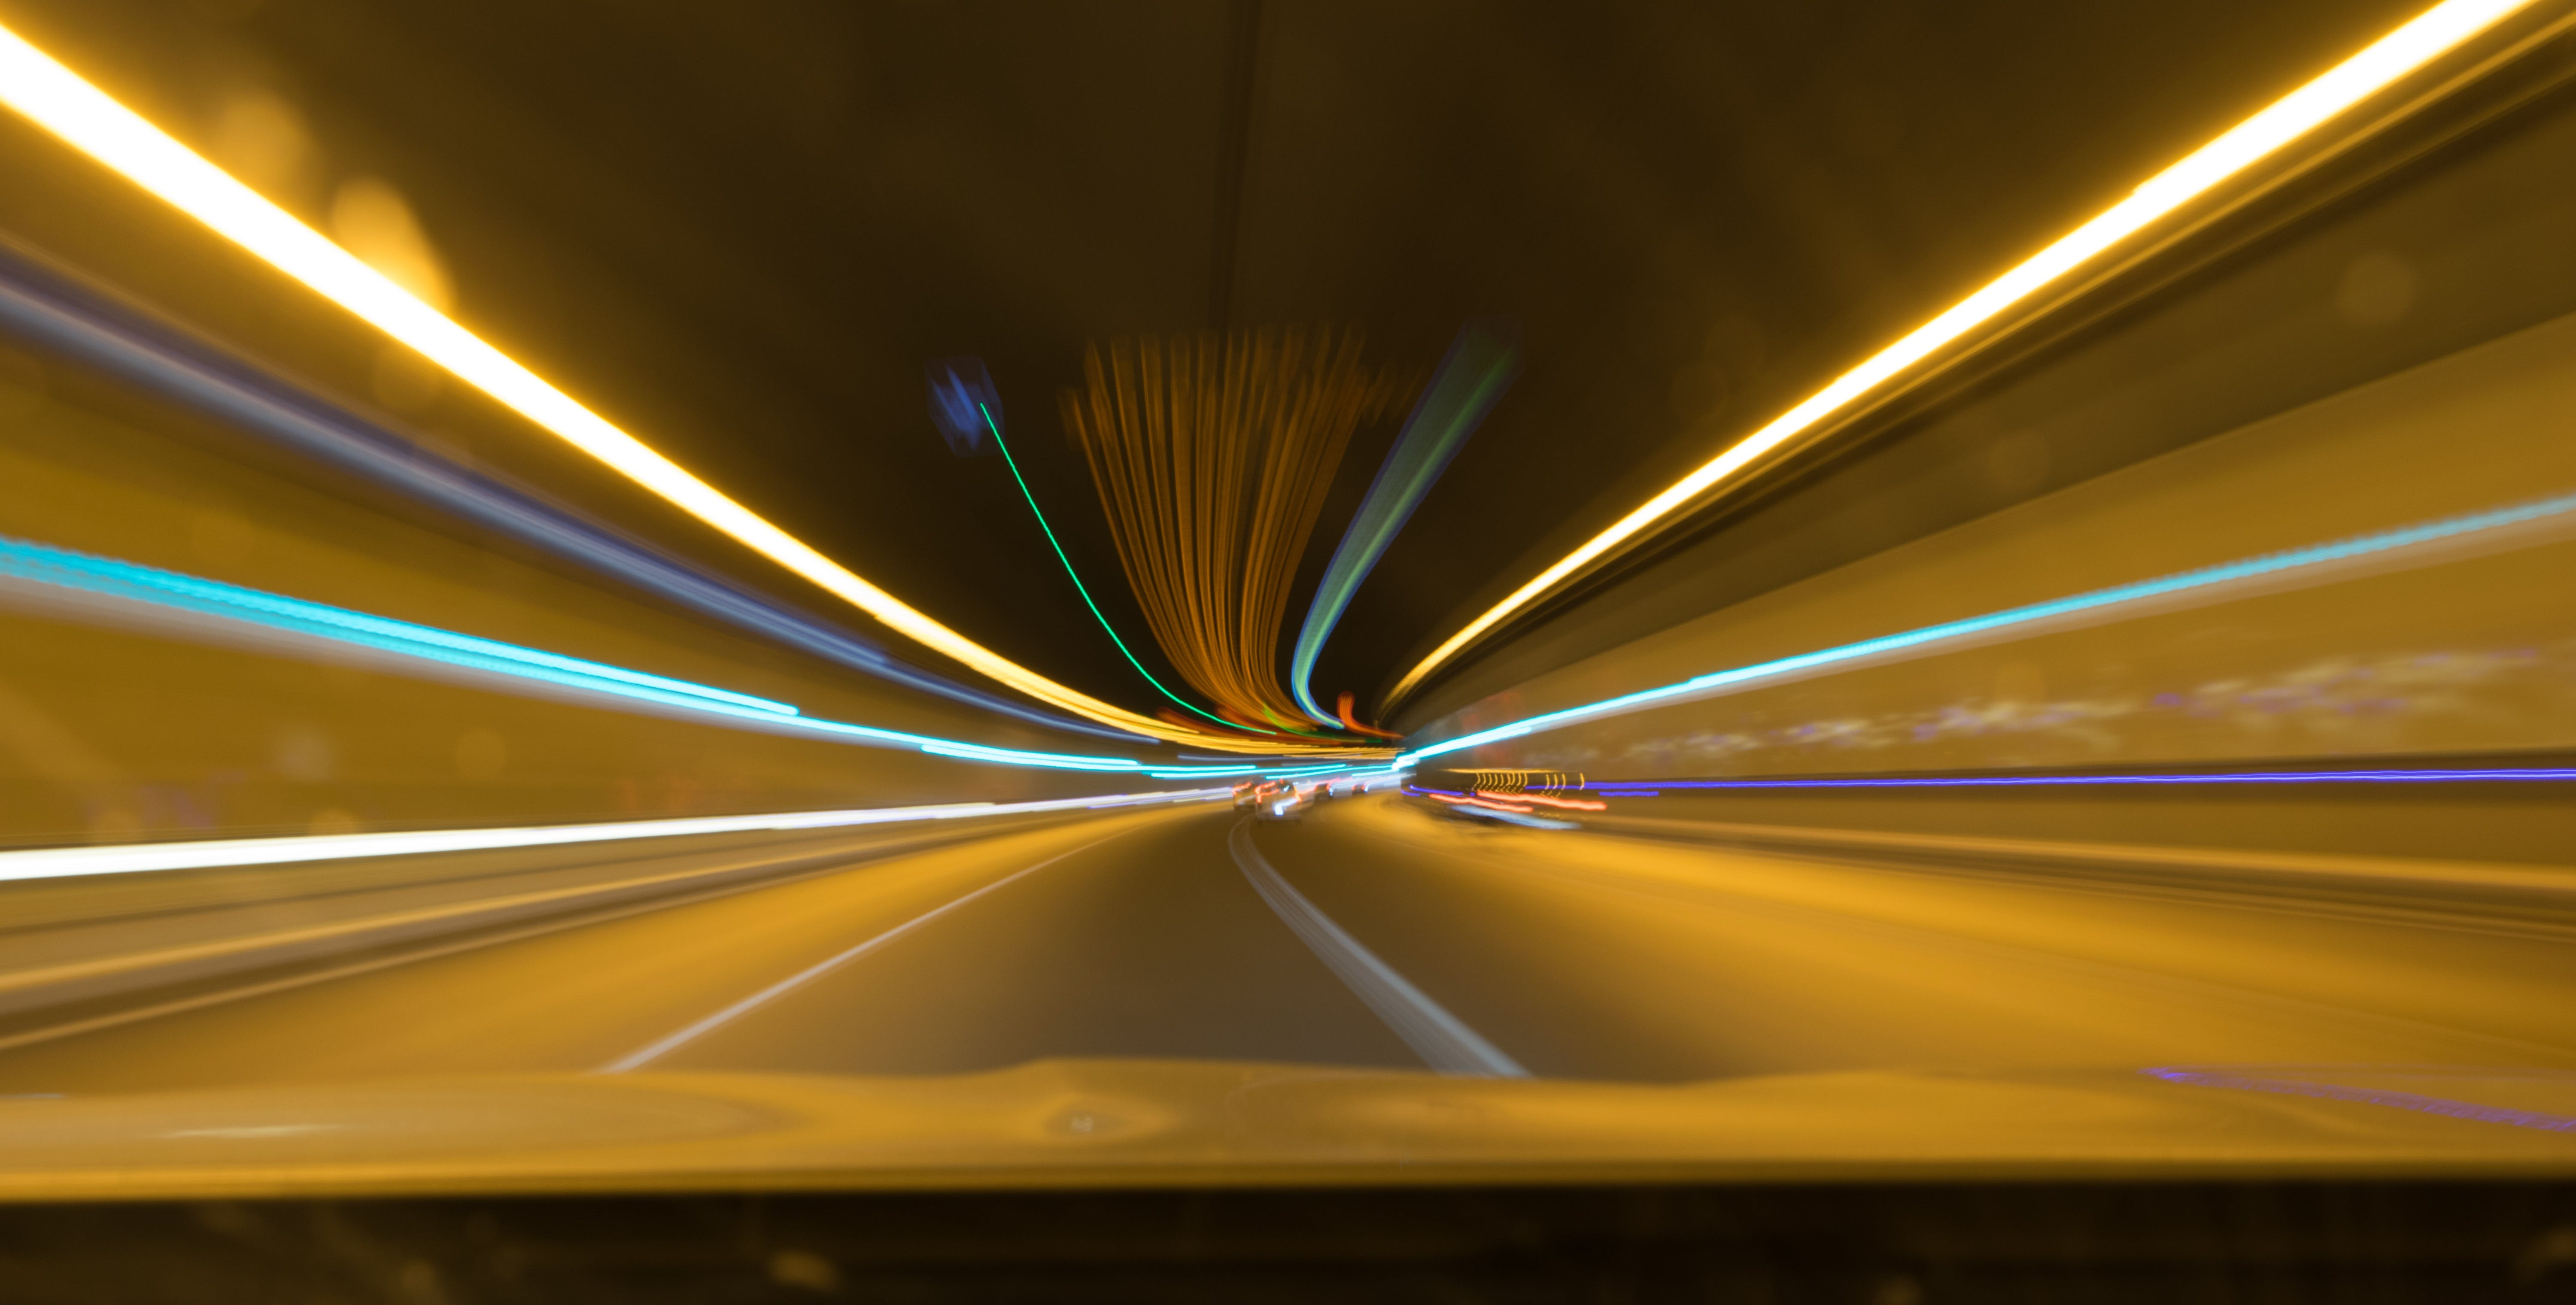 Free stock photo of cars, road, lights, tunnel